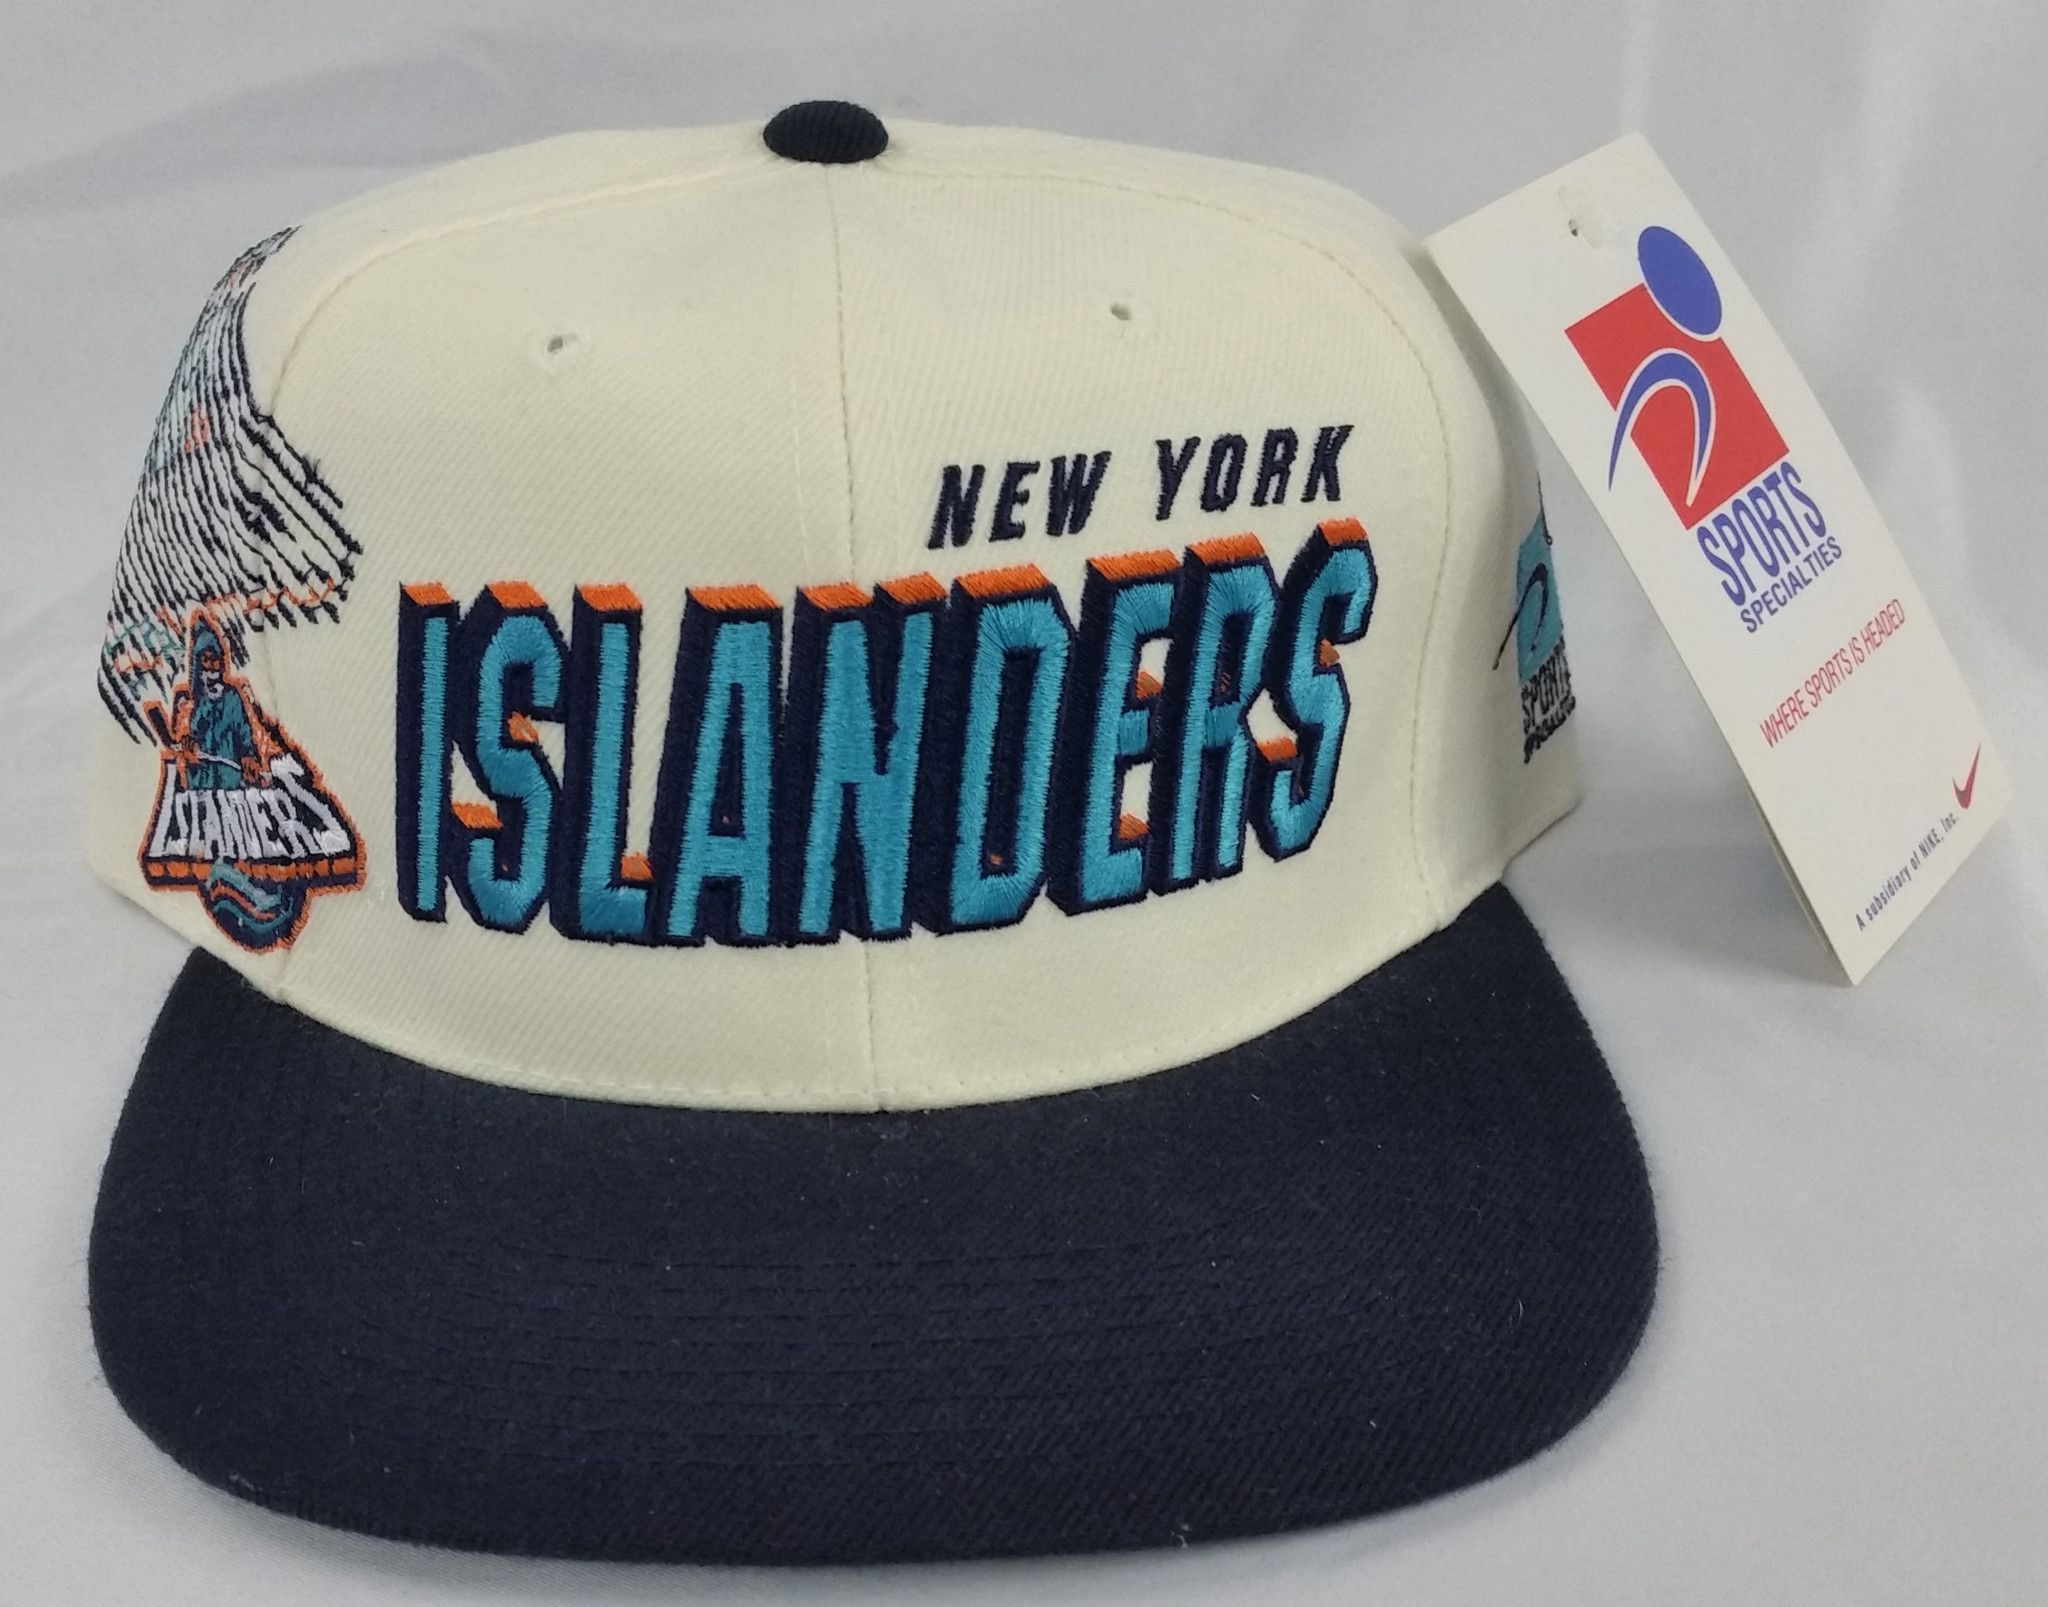 New York Islanders Vintage Snapback Sports Specialties Shadow Hat NWT Rare  Cap Fisherman 90 s Logo 3a4450e5dba